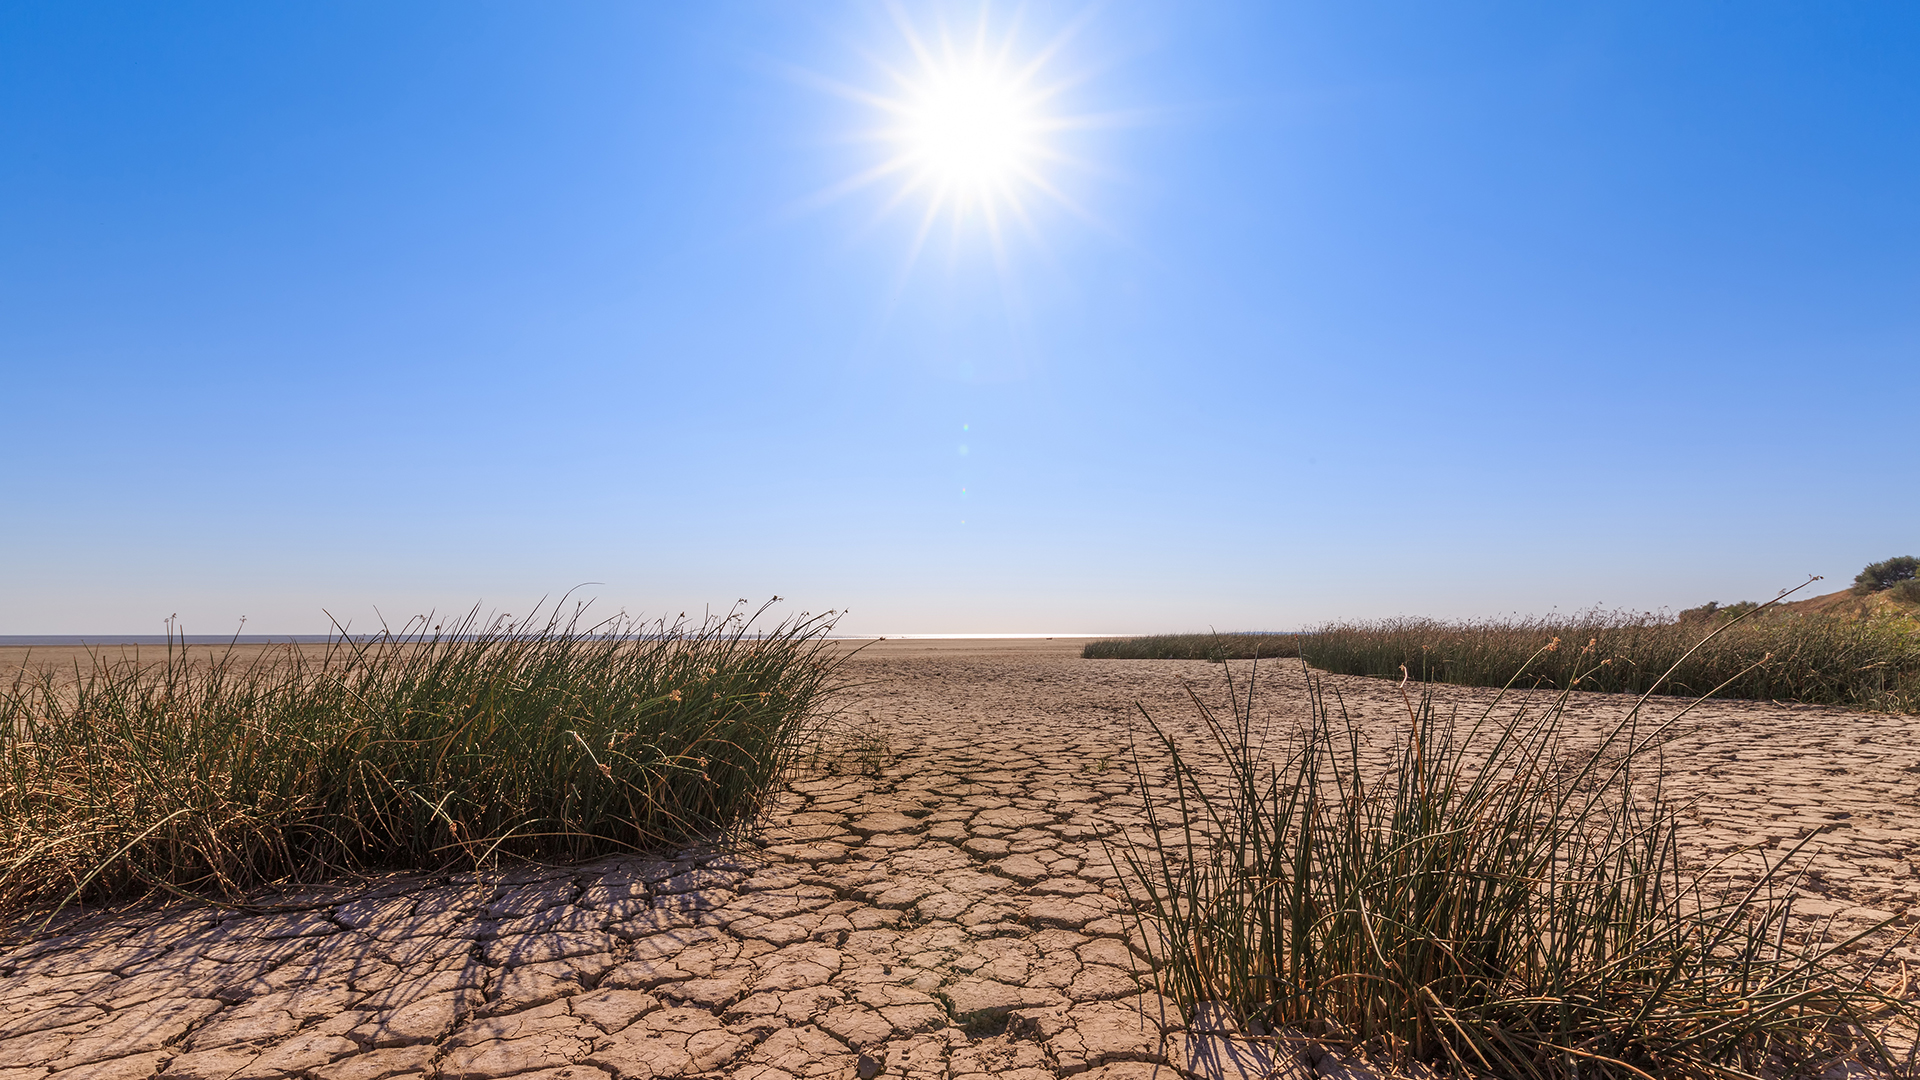 BEIS consultation on requiring mandatory climate-related financial disclosures